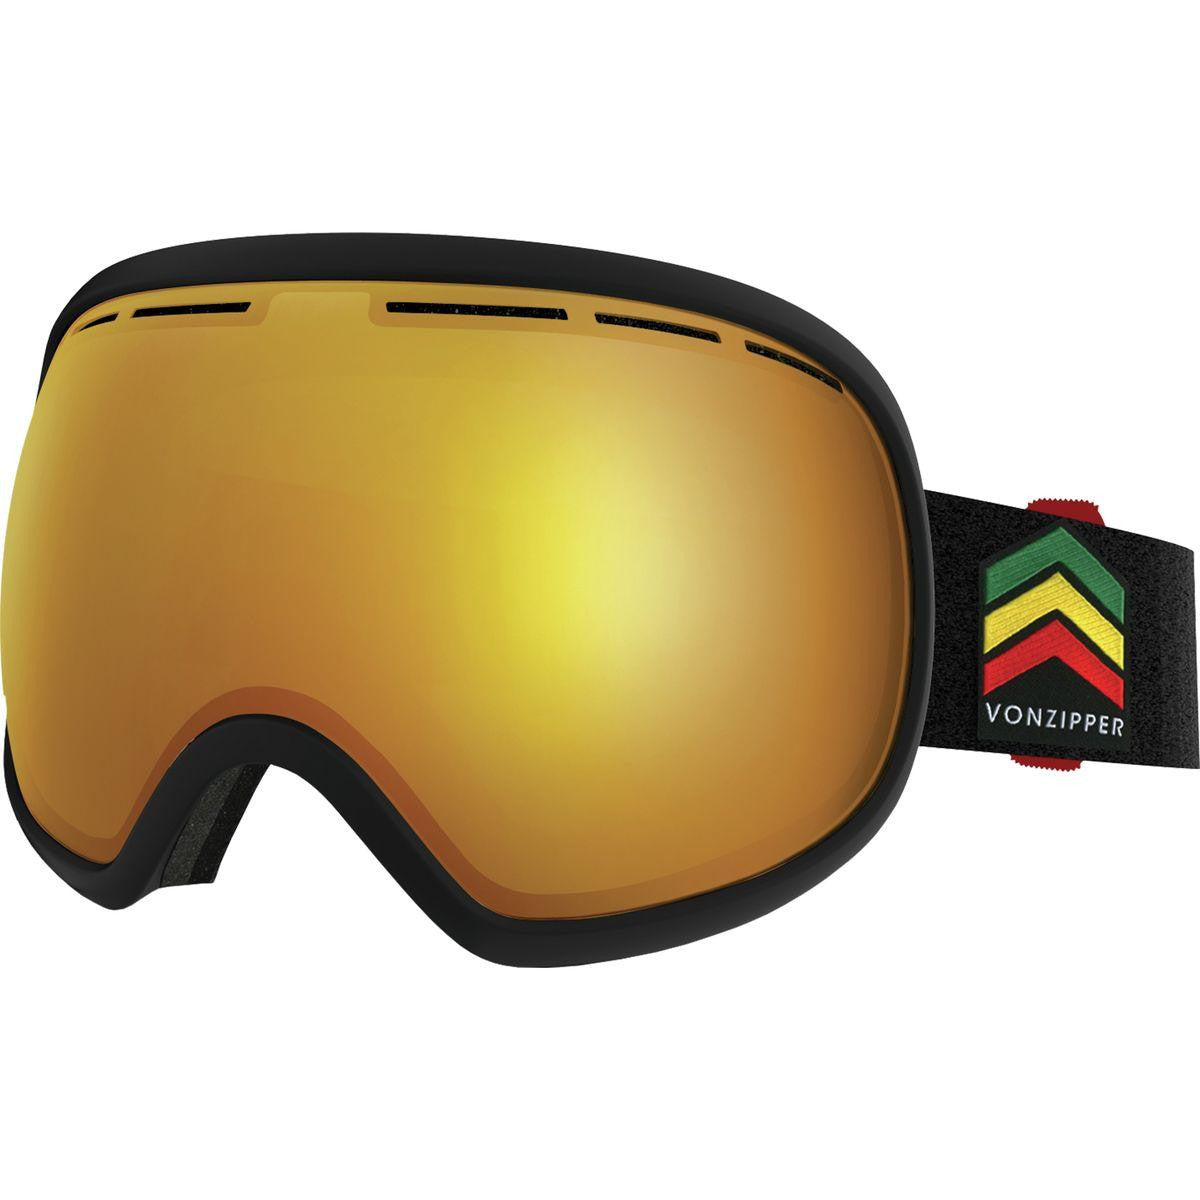 Vonzipper Fishbowl Goggles